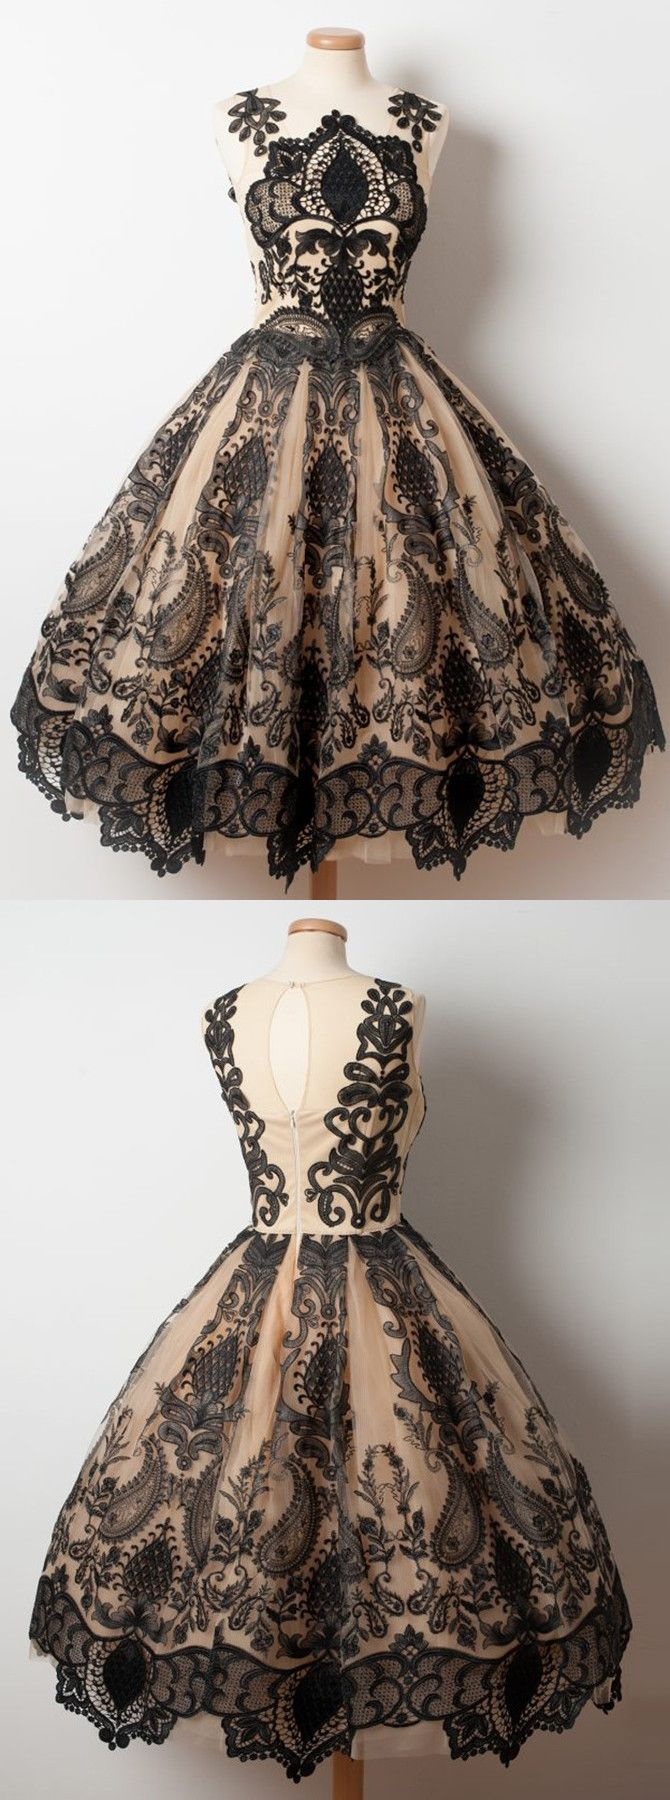 2017 homecoming dresses,short homecoming dresses,short prom dresses,lace homecoming dresses,black homecoming dresses